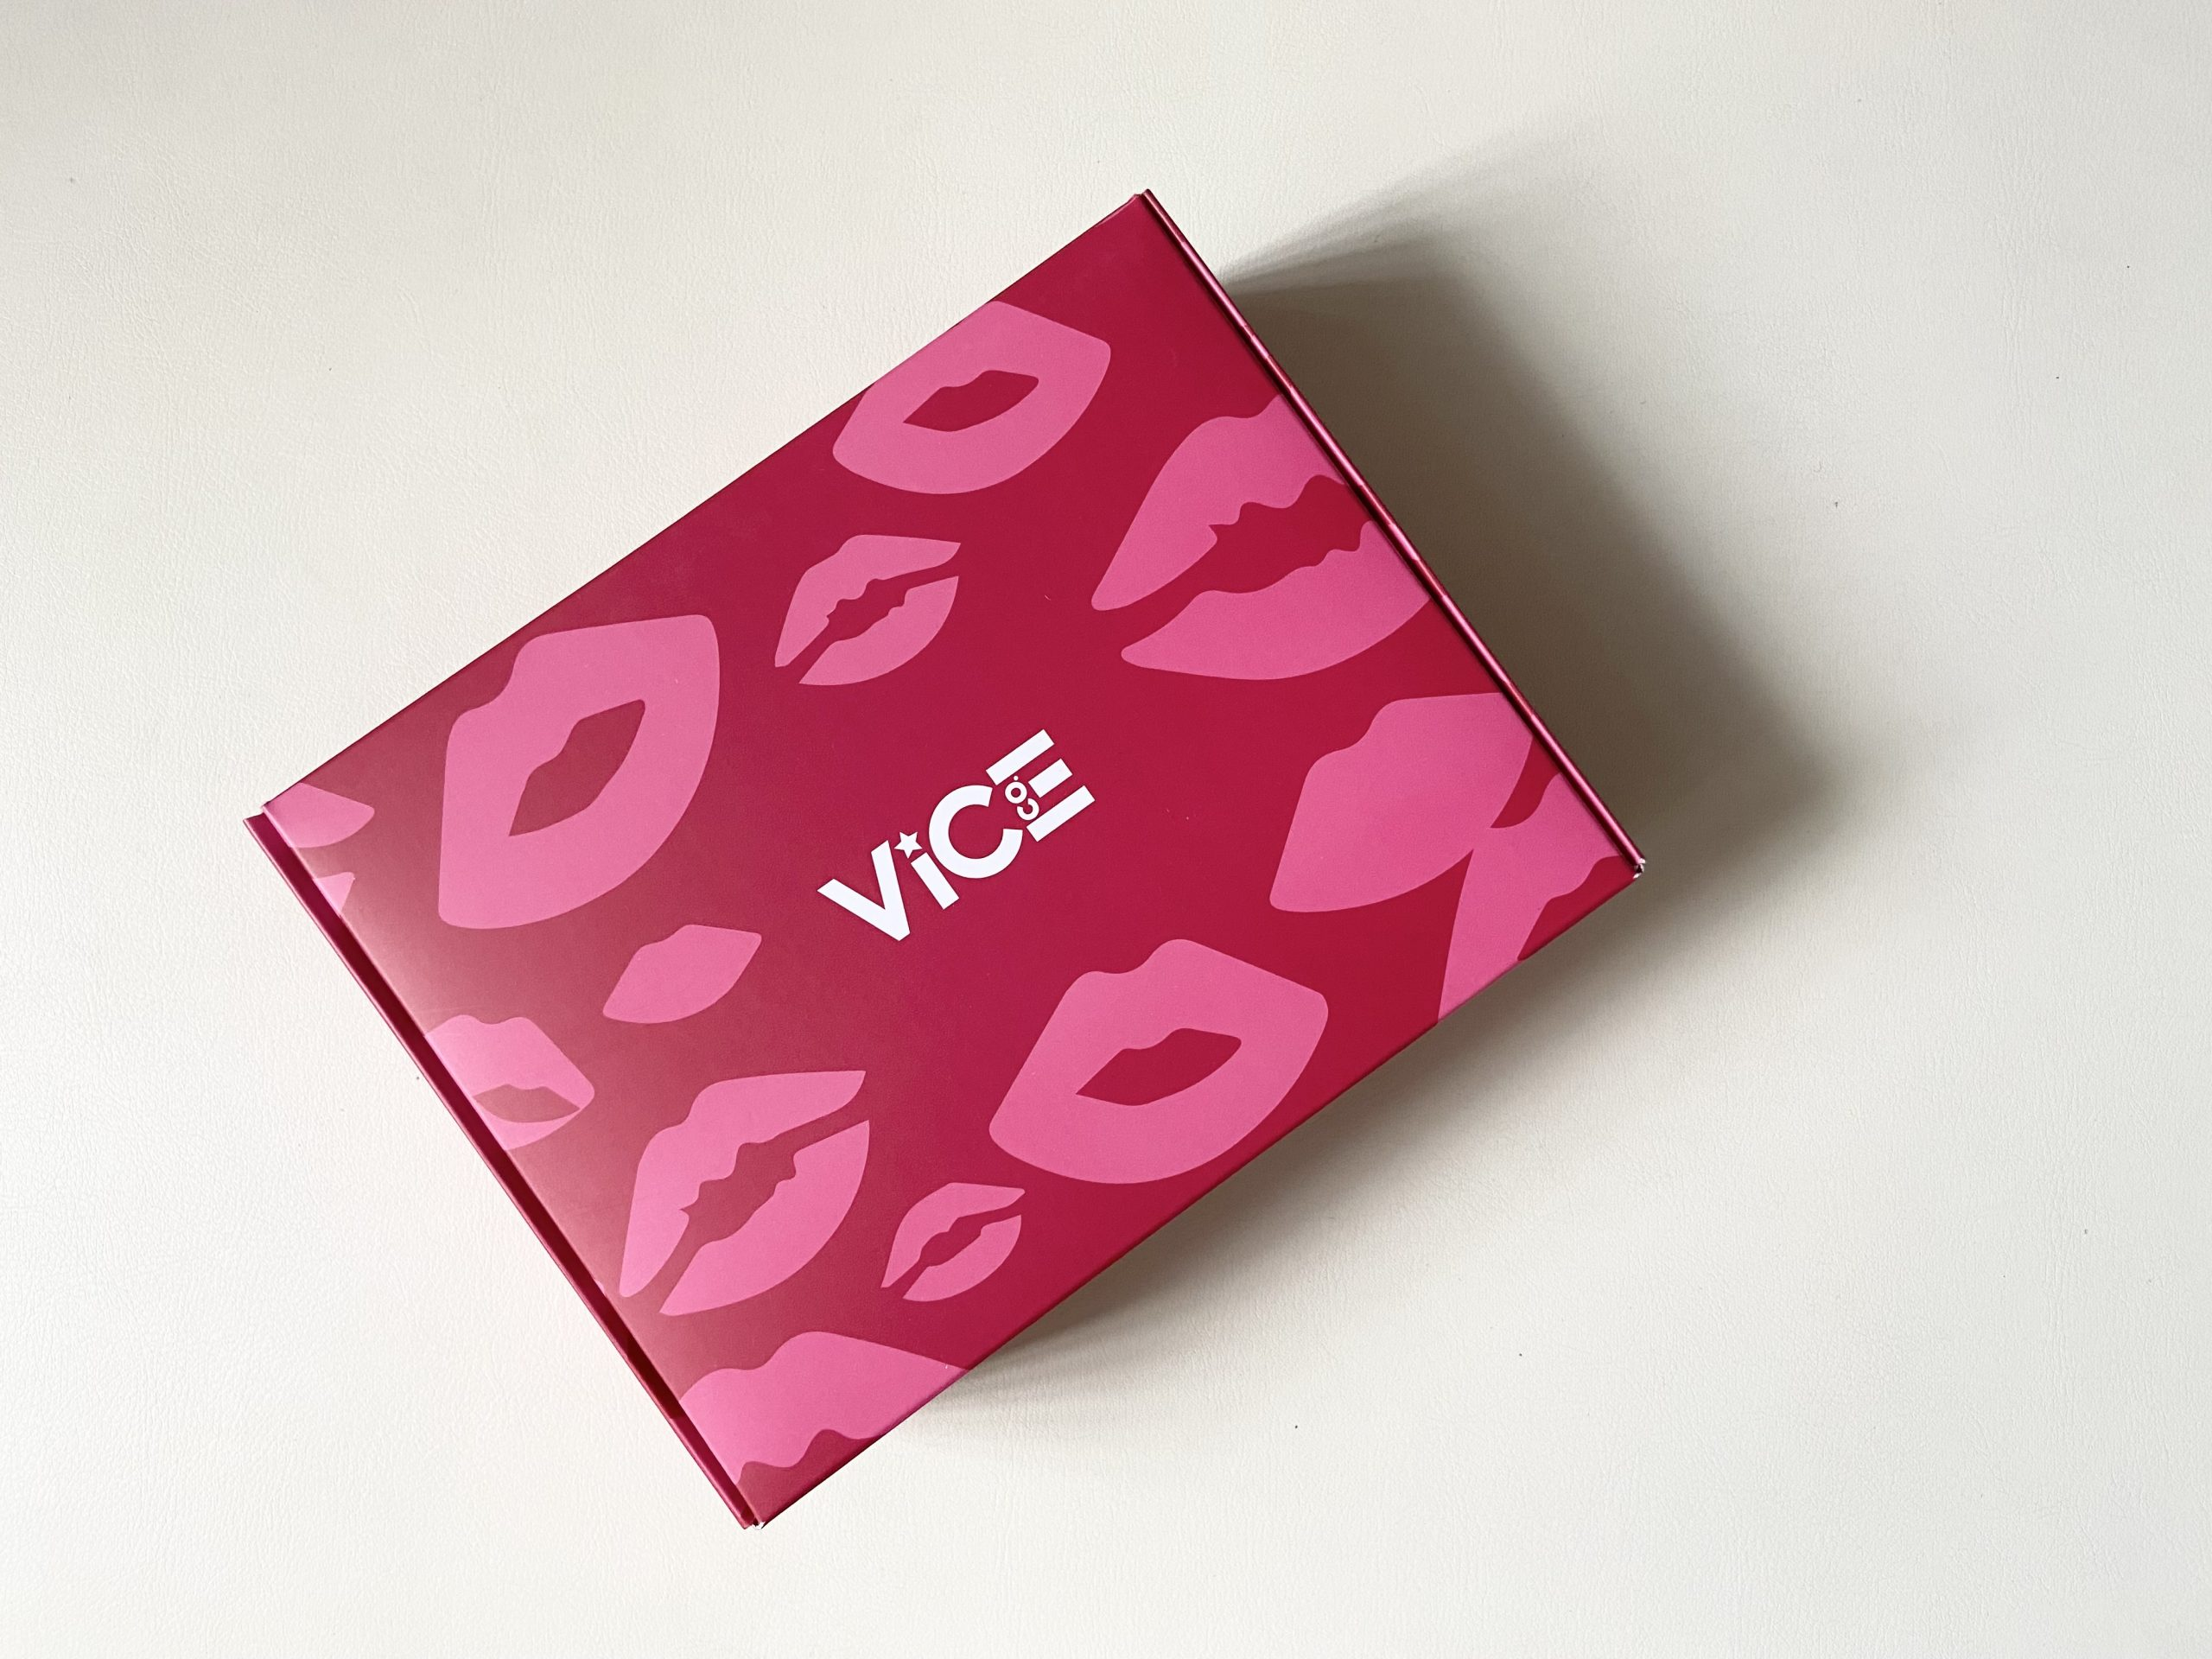 Shopee 7.7: Get Gandoll-ed up with Vice Cosmetics Special Deals